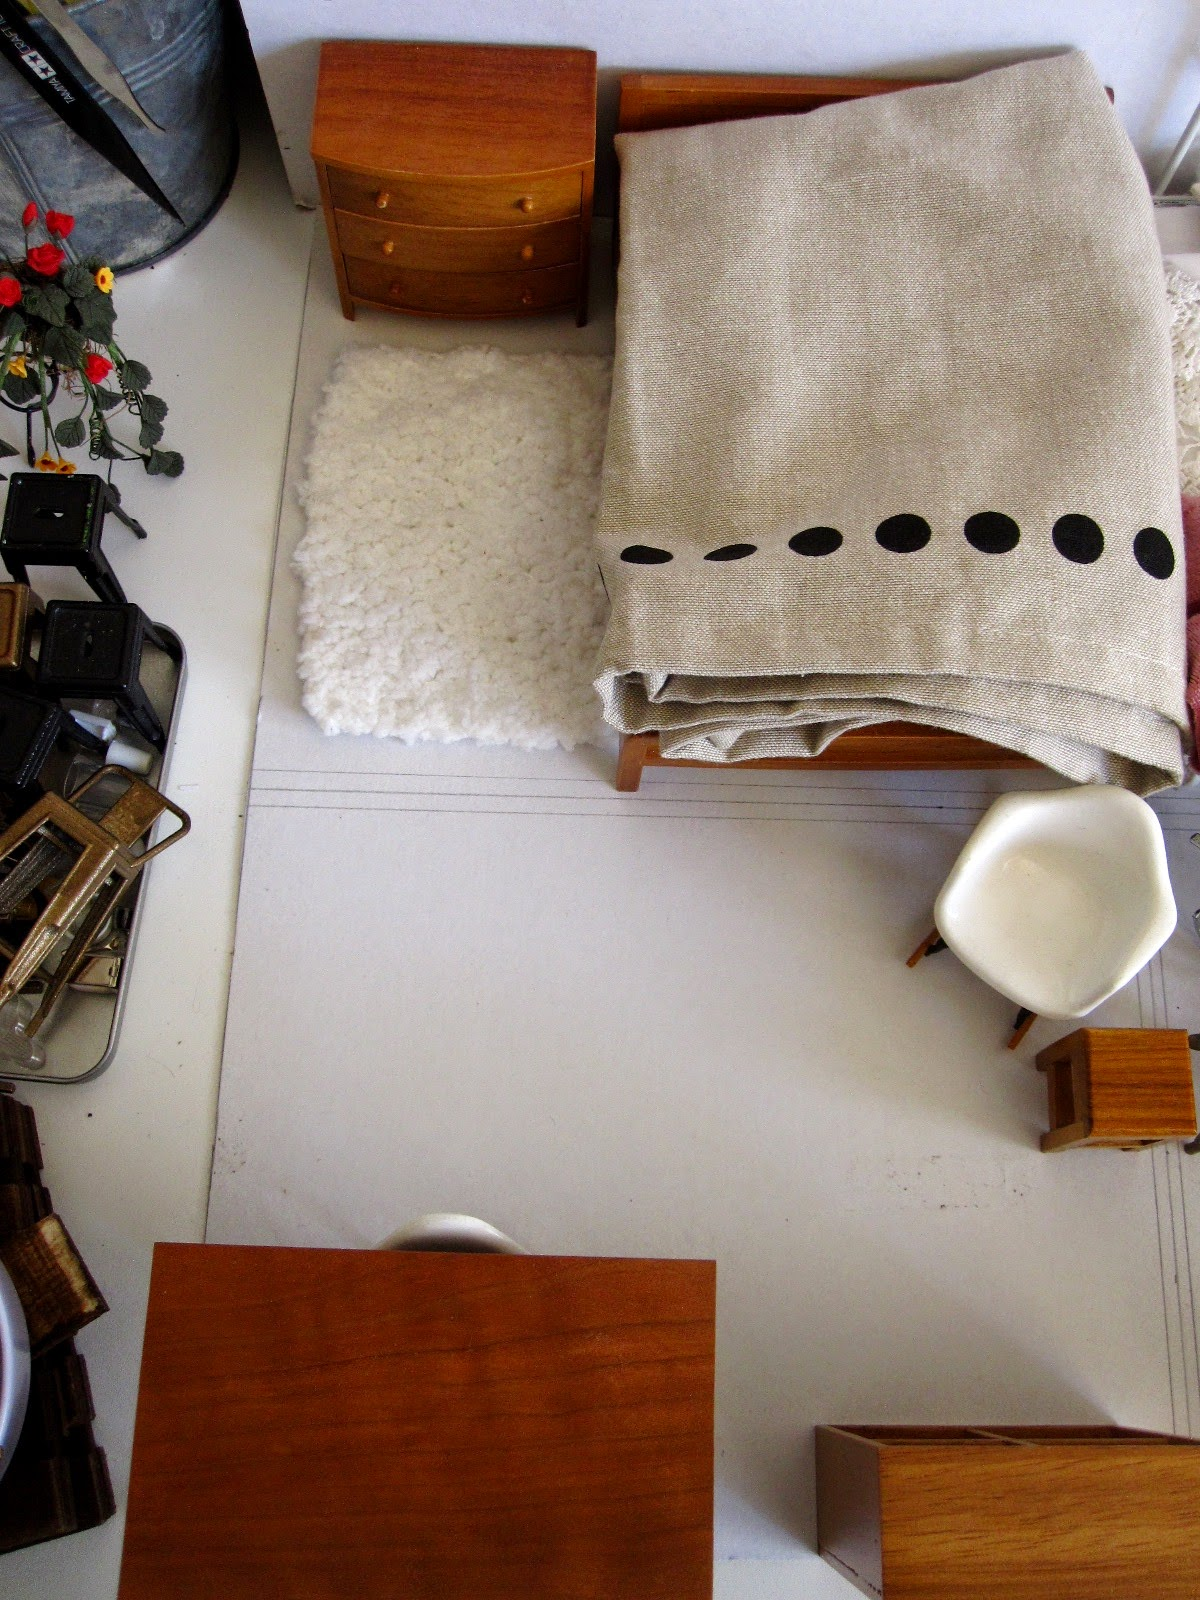 View from above of mid-century modern dolls' house miniature furniture bedroom setting arranged on a piece of cardboard.